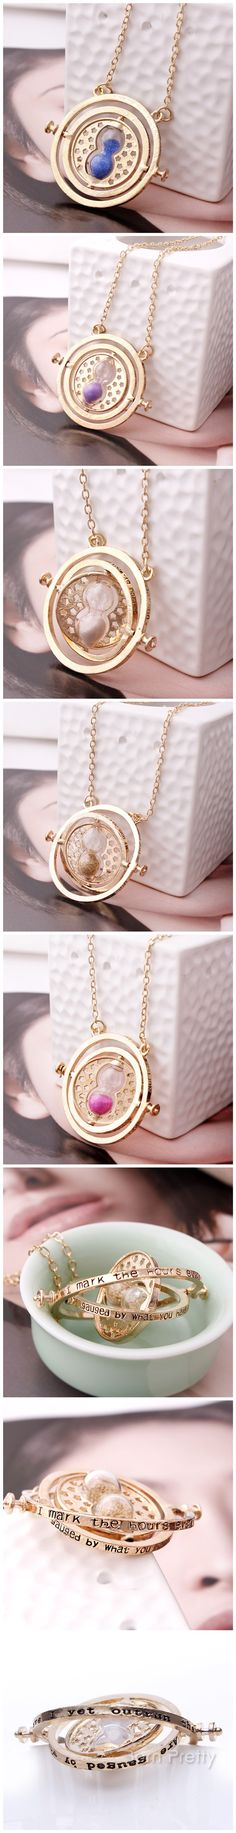 $2.65 1Pc Sand Glass Pendant Necklace Styliah Time Turner English Words Metal Chain Short Necklace - BornPrettyStore.com GET 10% OFF WITH THIS CODE: SCT10